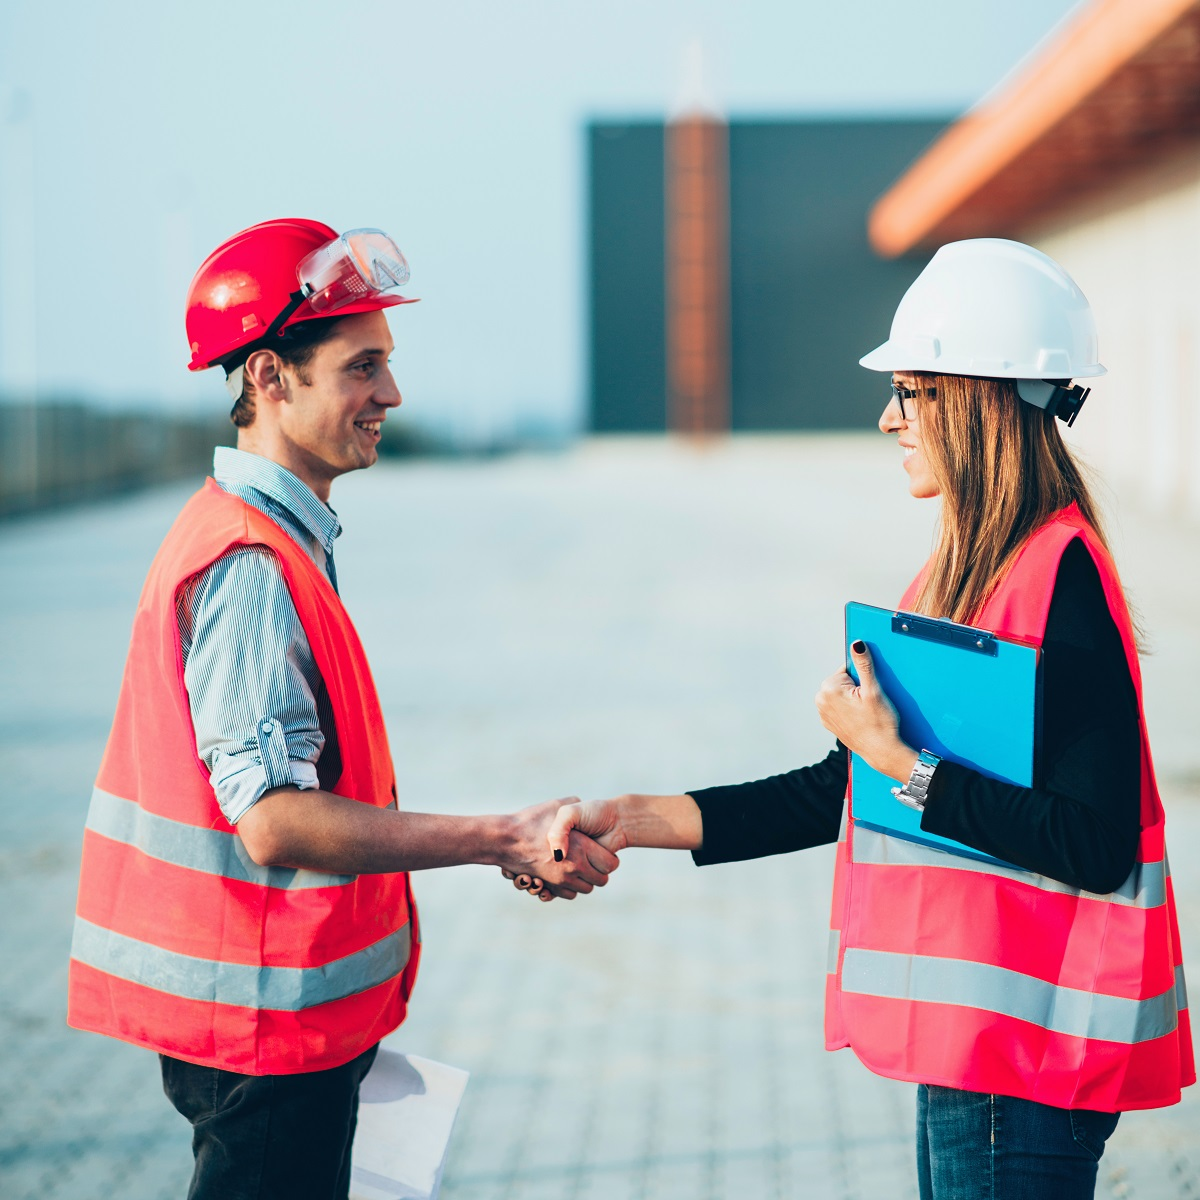 Handshaking after successful meeting on construction site